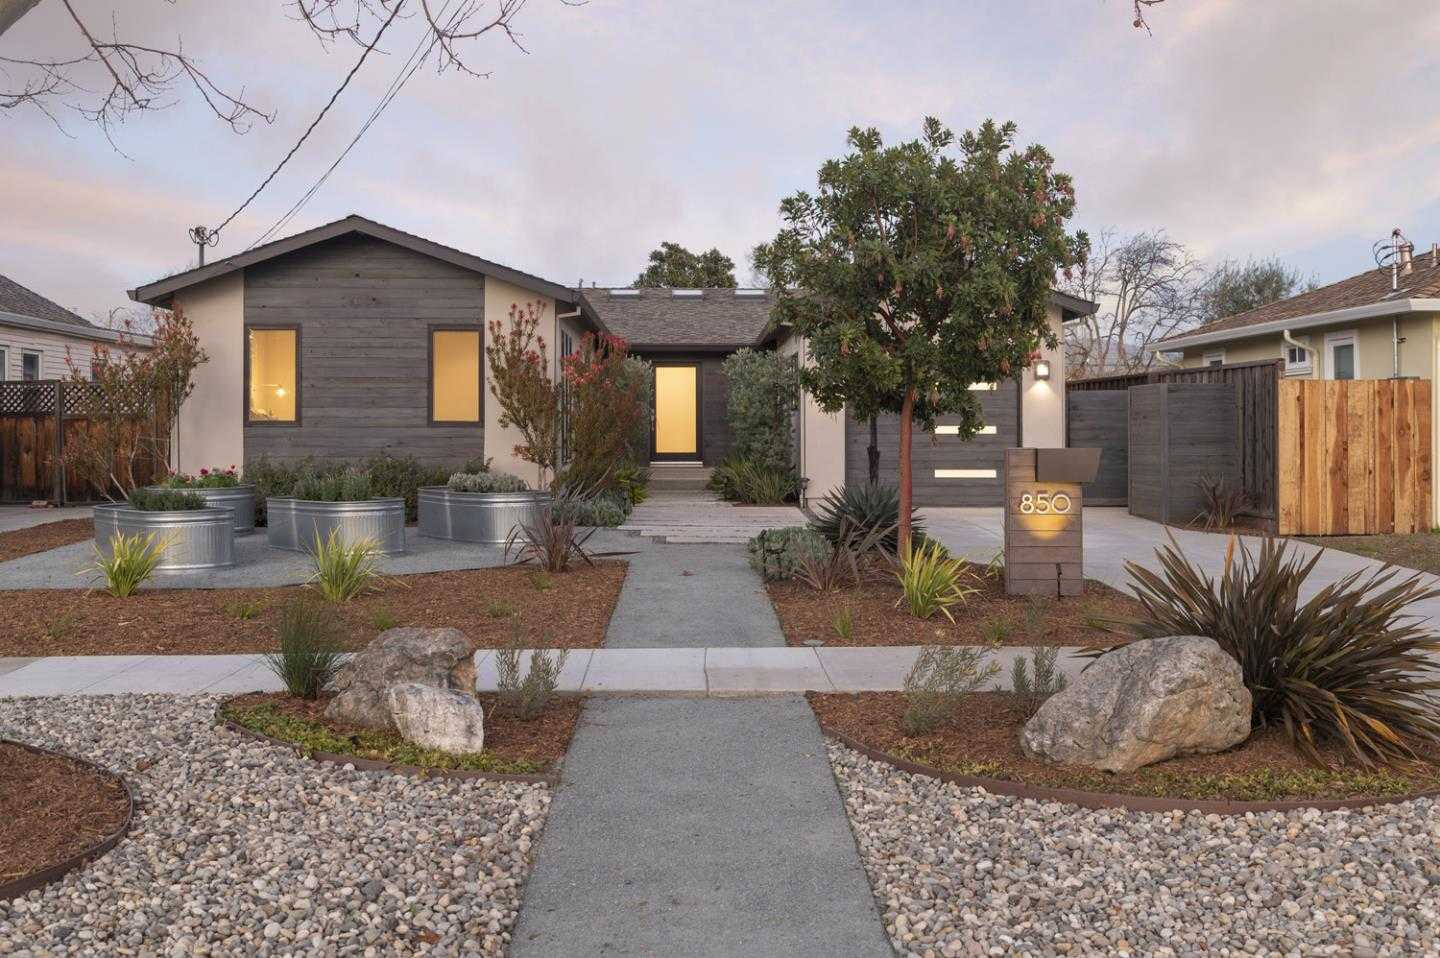 $1,350,000 - 4Br/3Ba -  for Sale in San Jose